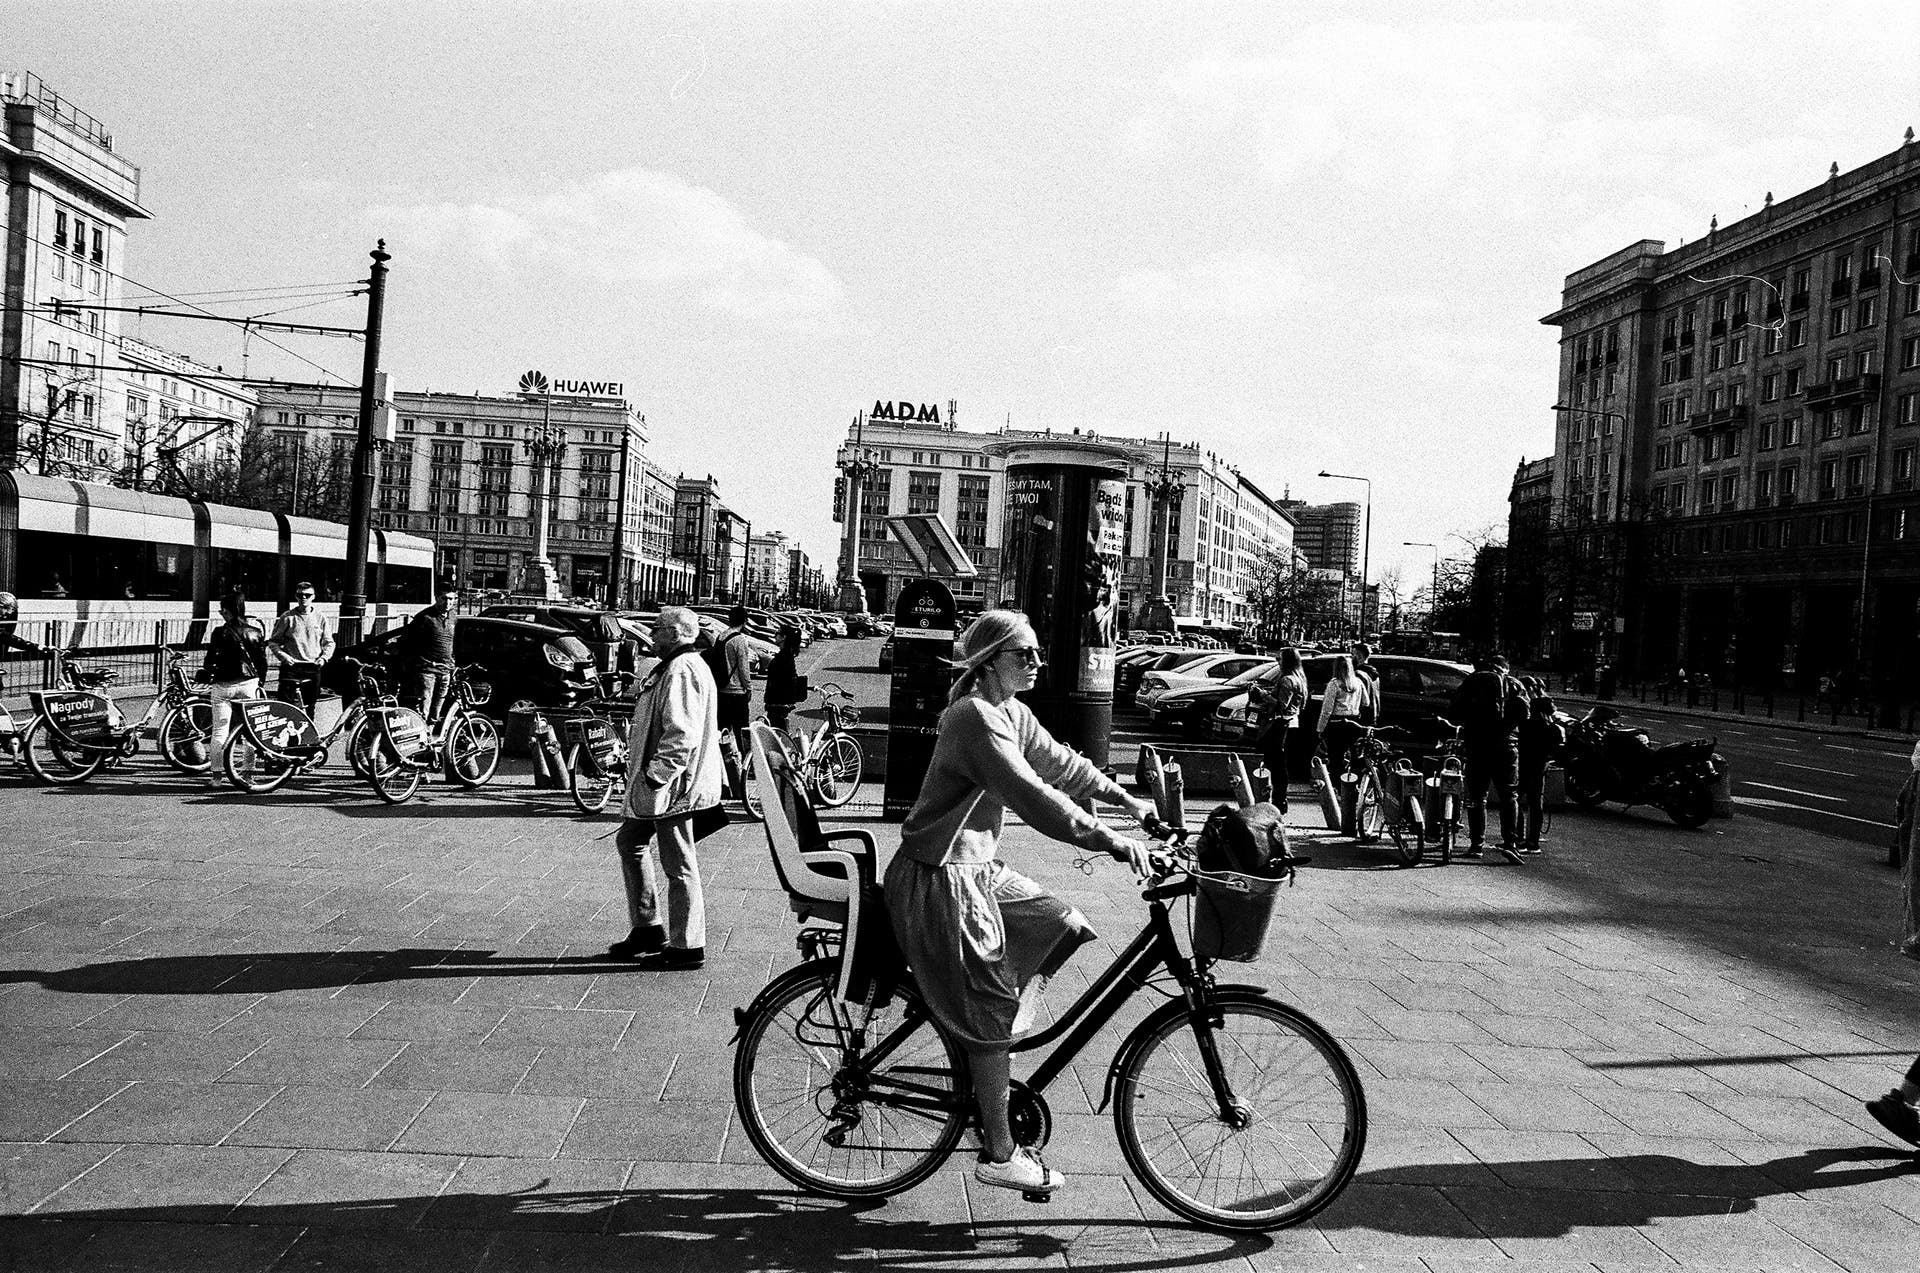 Erik Witsoe Uses Rollei Superpan 200 to Shoot Street Photography